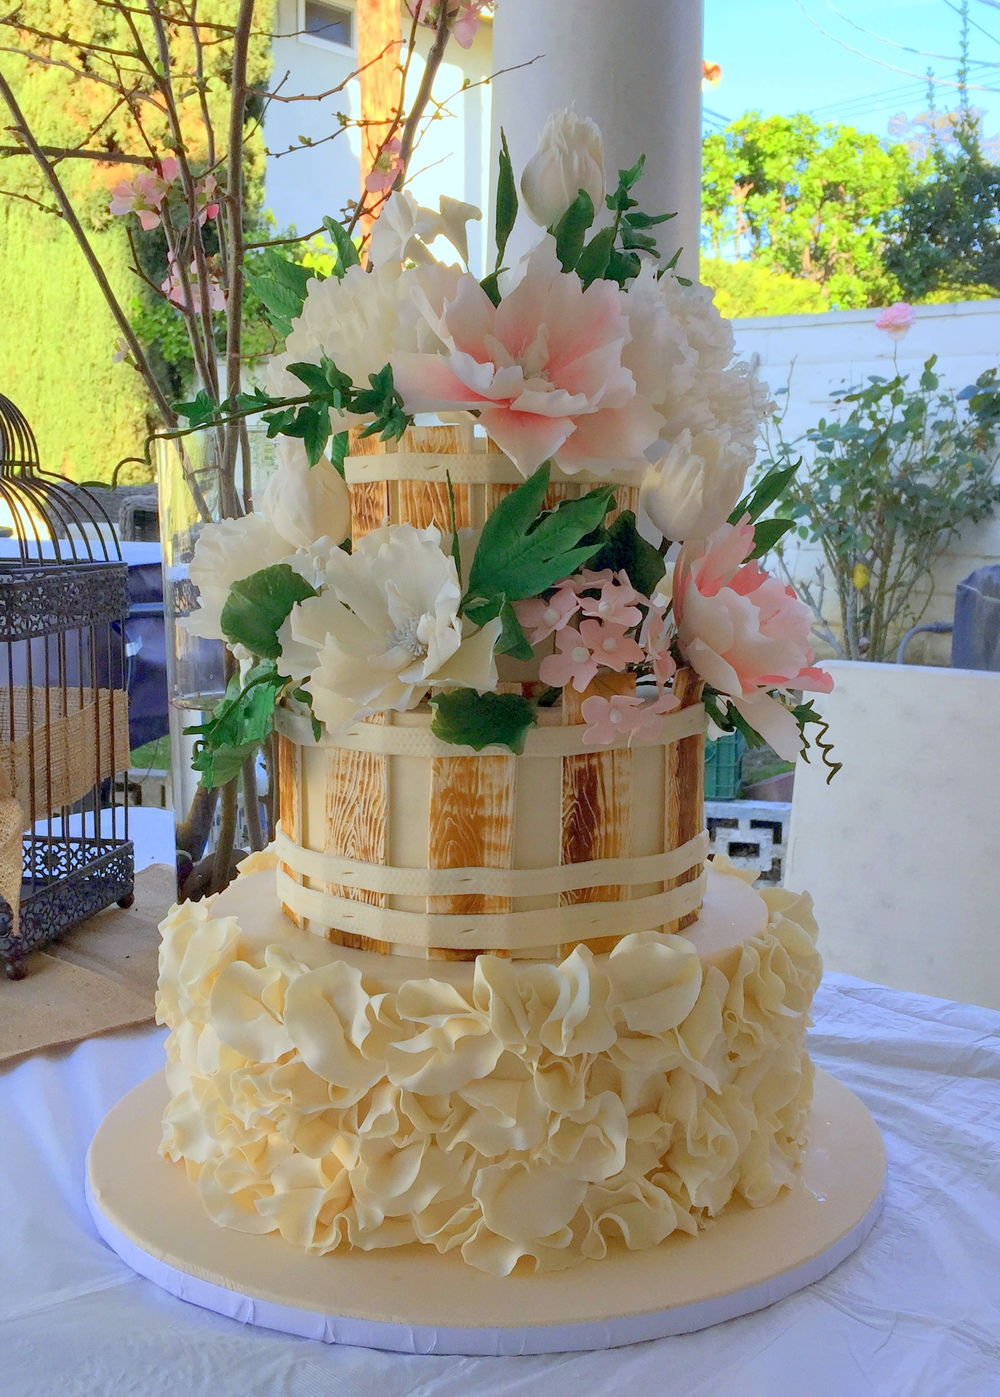 Birthday and Celebration Cakes in Orange County by RooneyGirl BakeShop